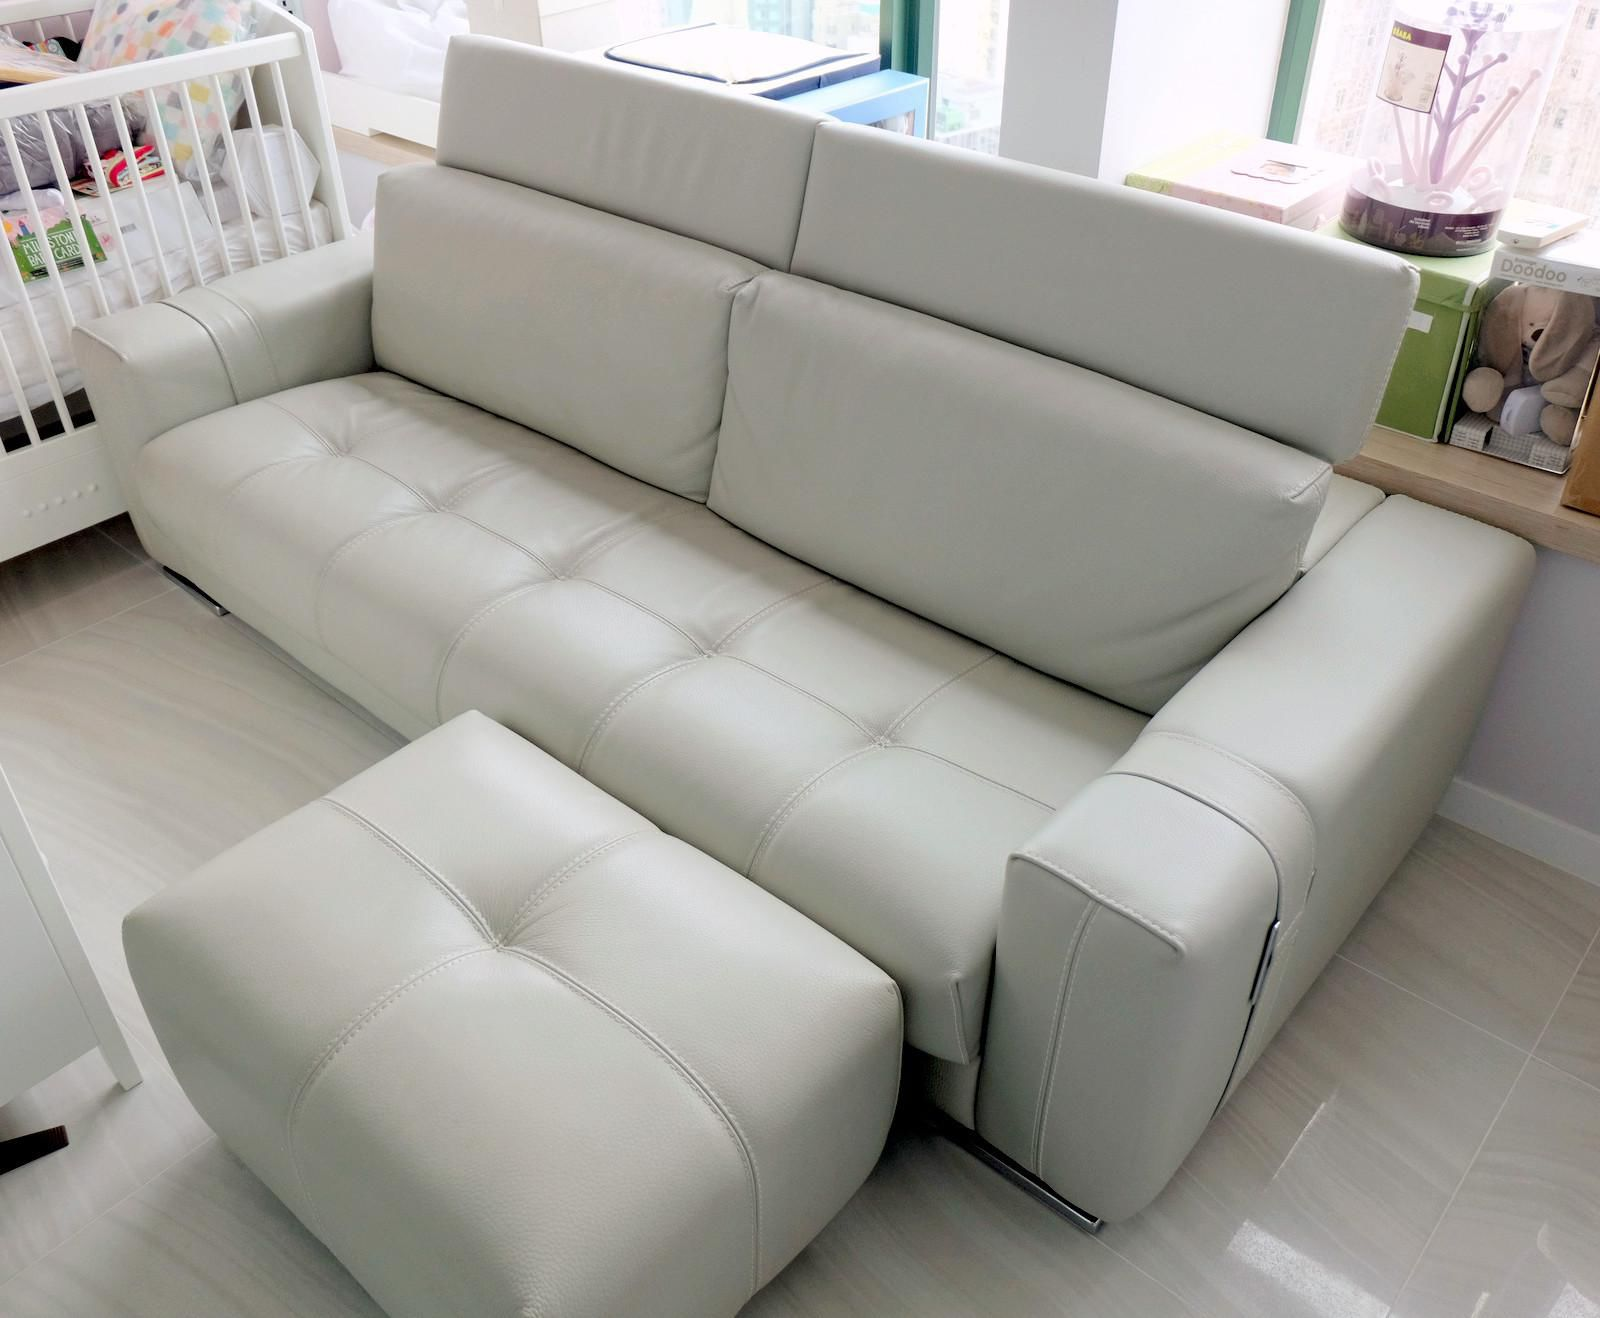 High End Italian 3-seater Leather Sofa With Ottoman By